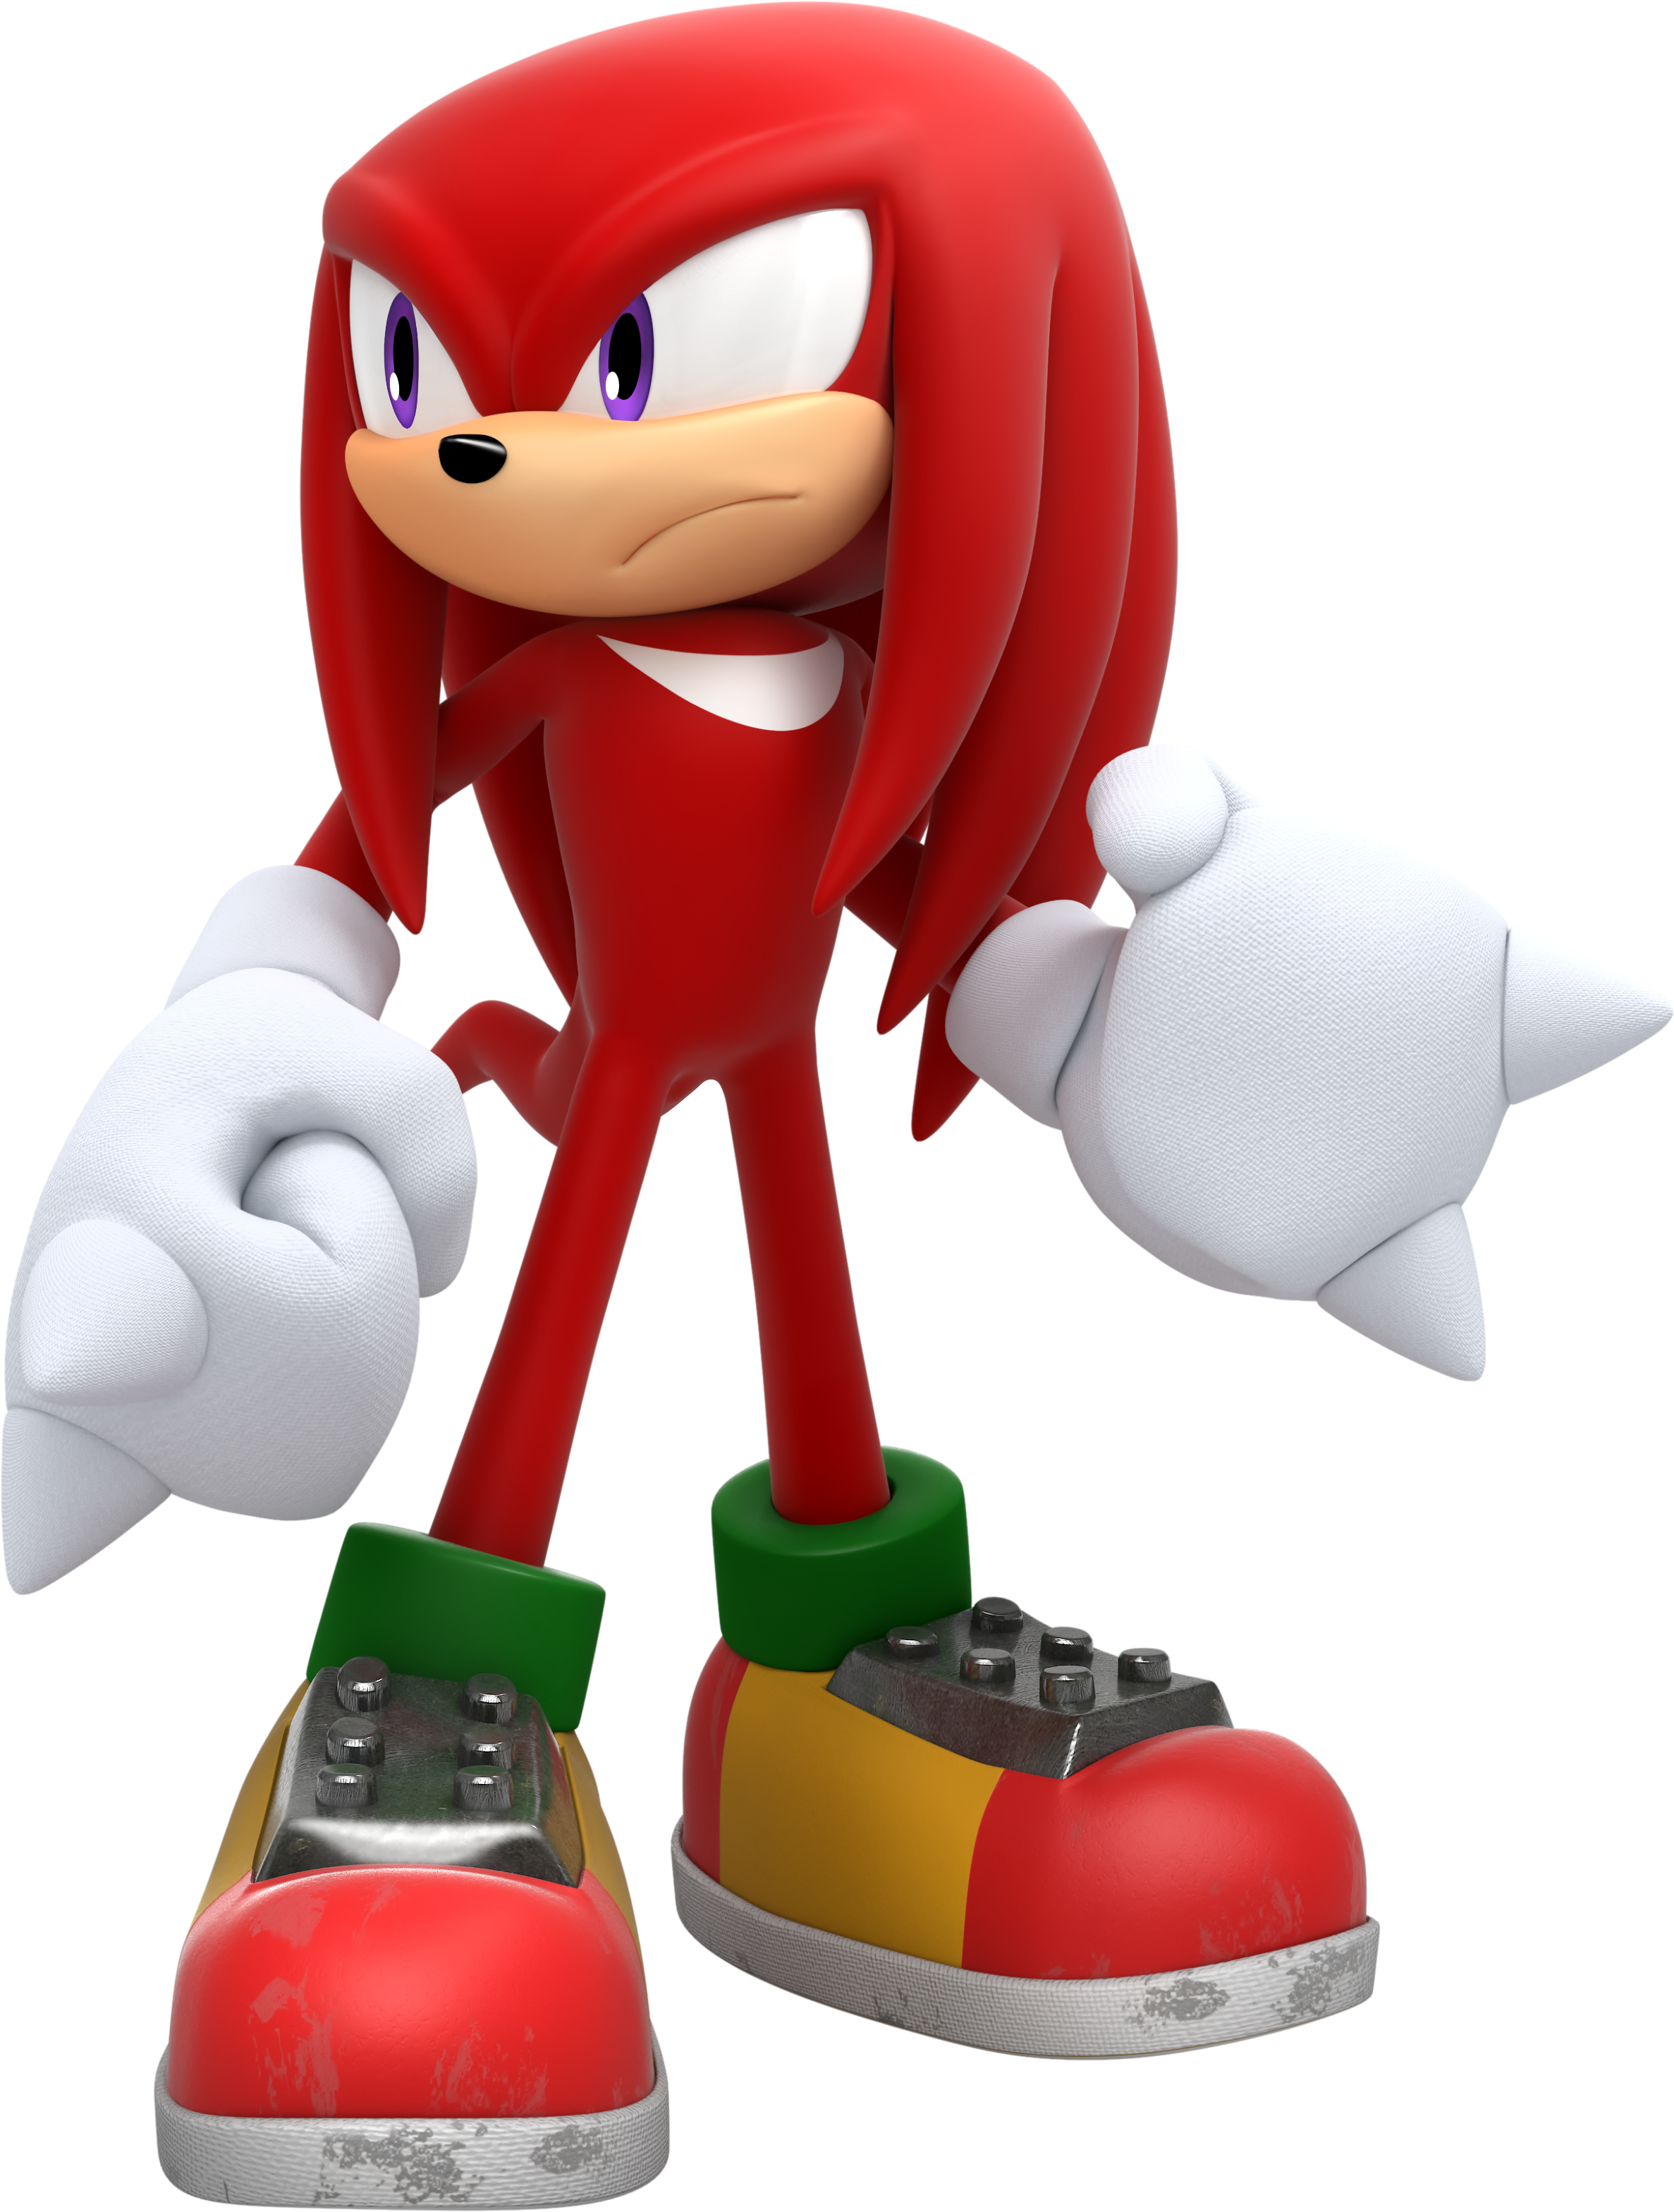 Knuckles The Echidna Sonic Knuckles Echidna Sonic Party